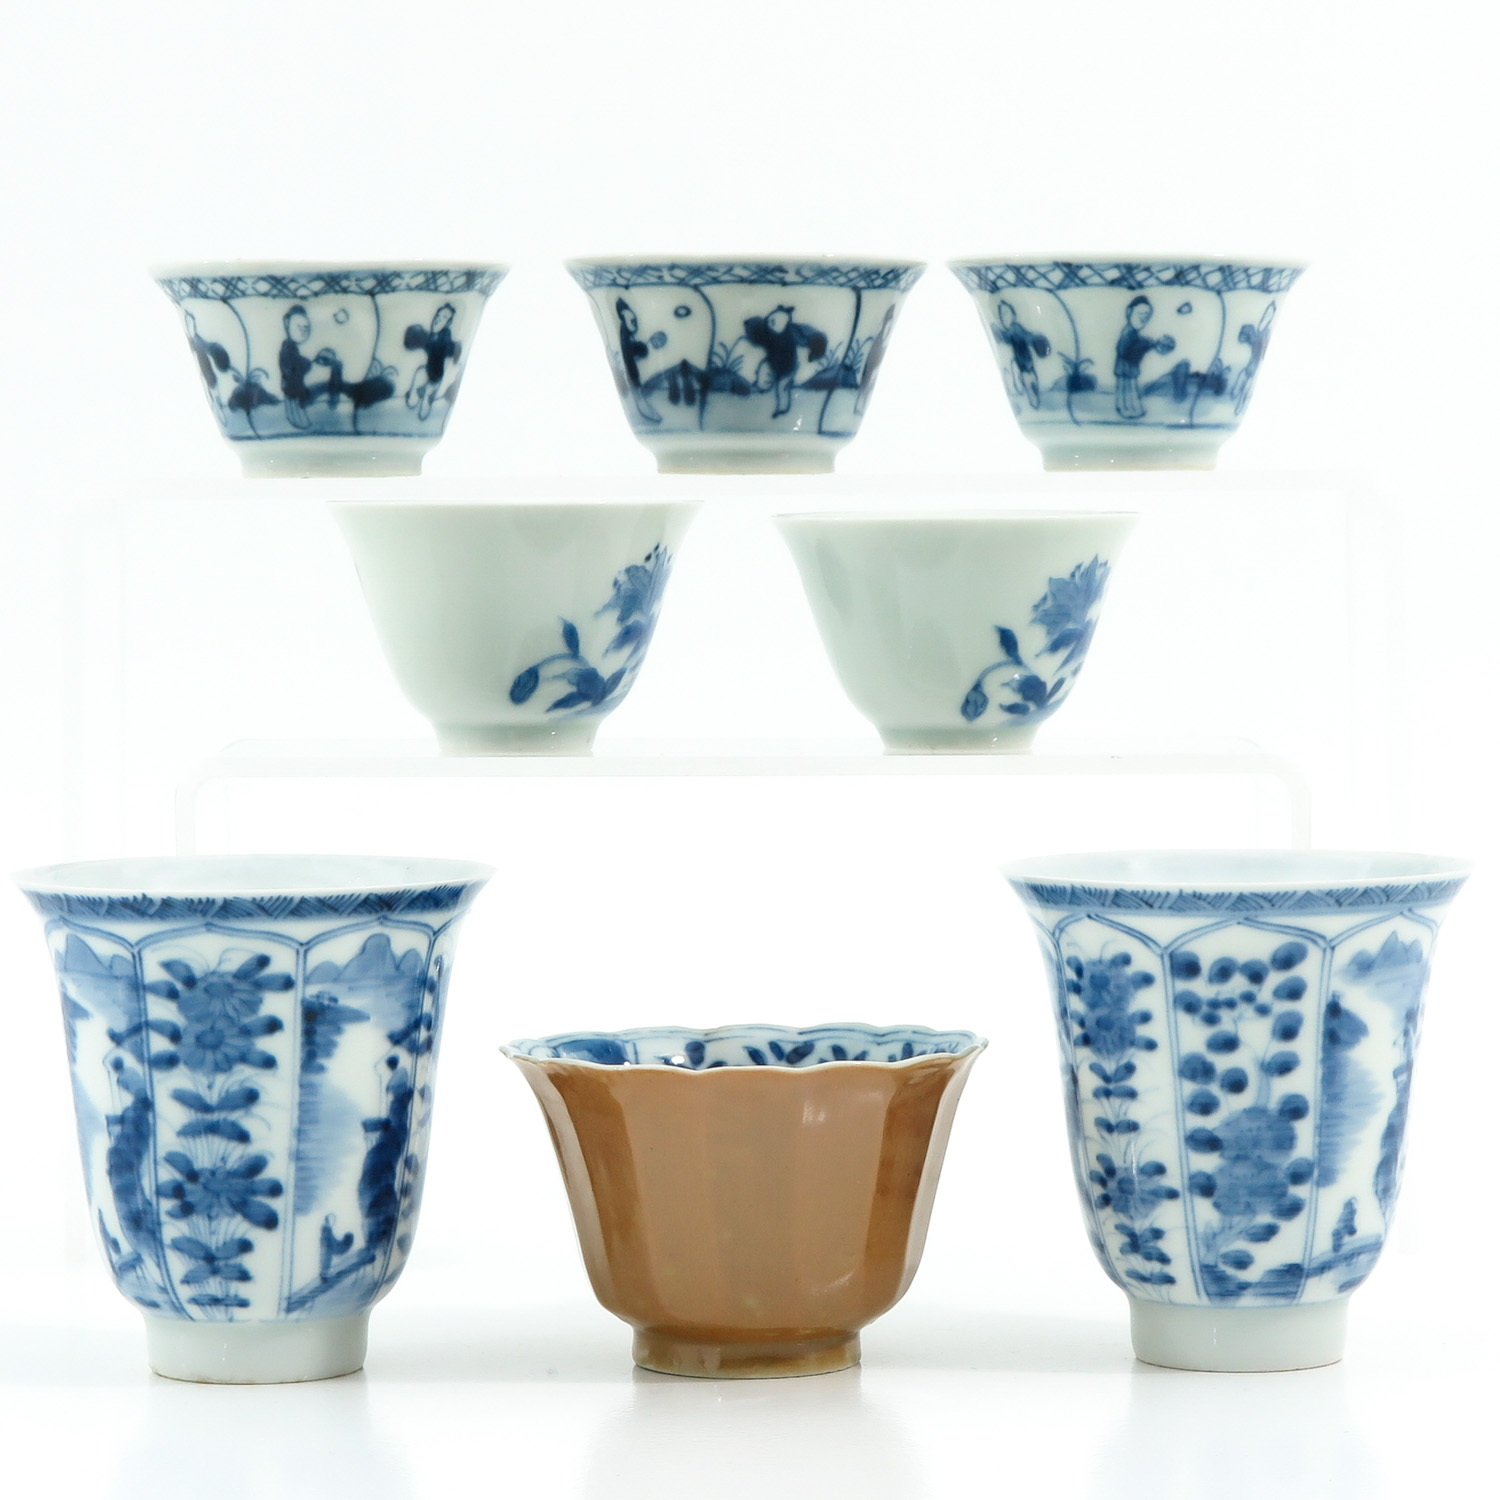 A Diverse Collection of Cups and Saucers - Image 4 of 10